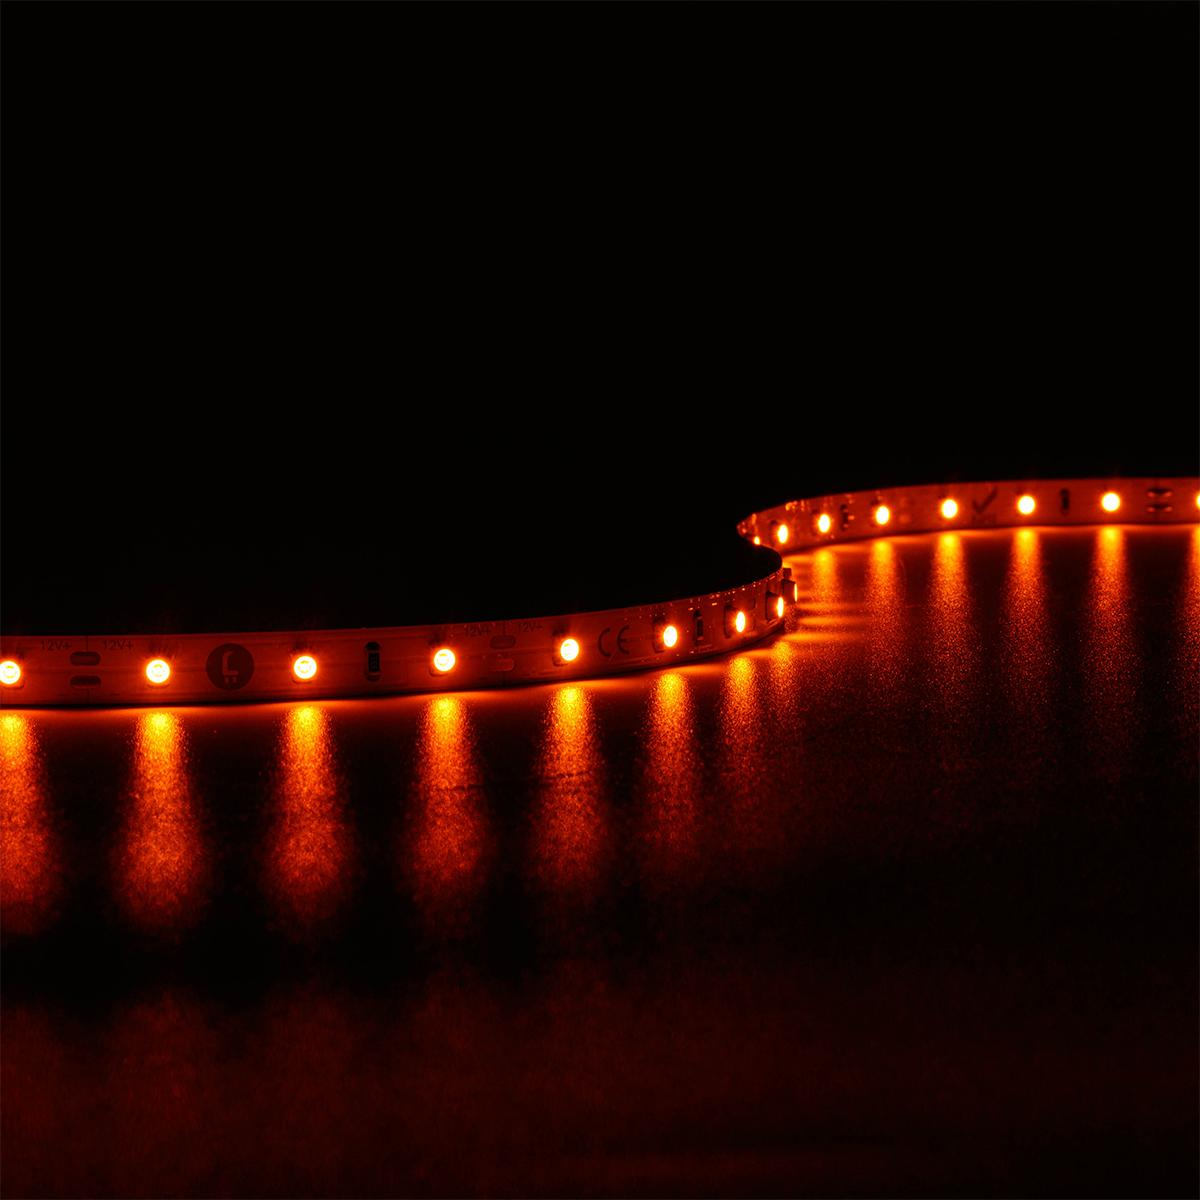 Strip Amber Bernstein 12V LED Streifen 4,8W/m 60LED/m IP20 2300K